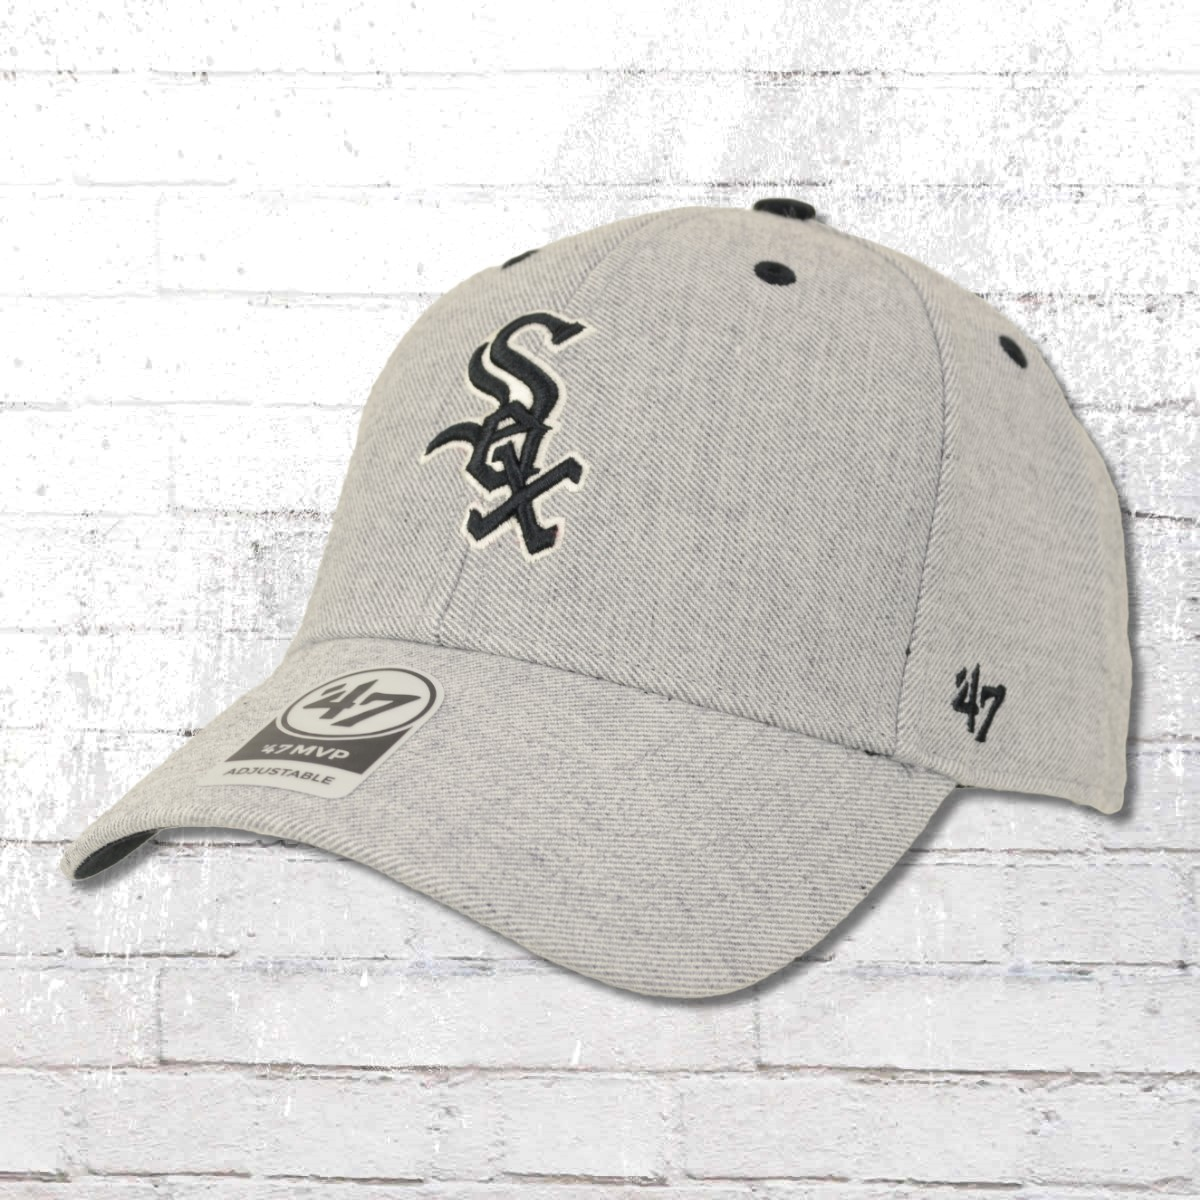 fbebf85f5 Order now | 47 Brands Chicago White Sox Hat Storm Cloud grey